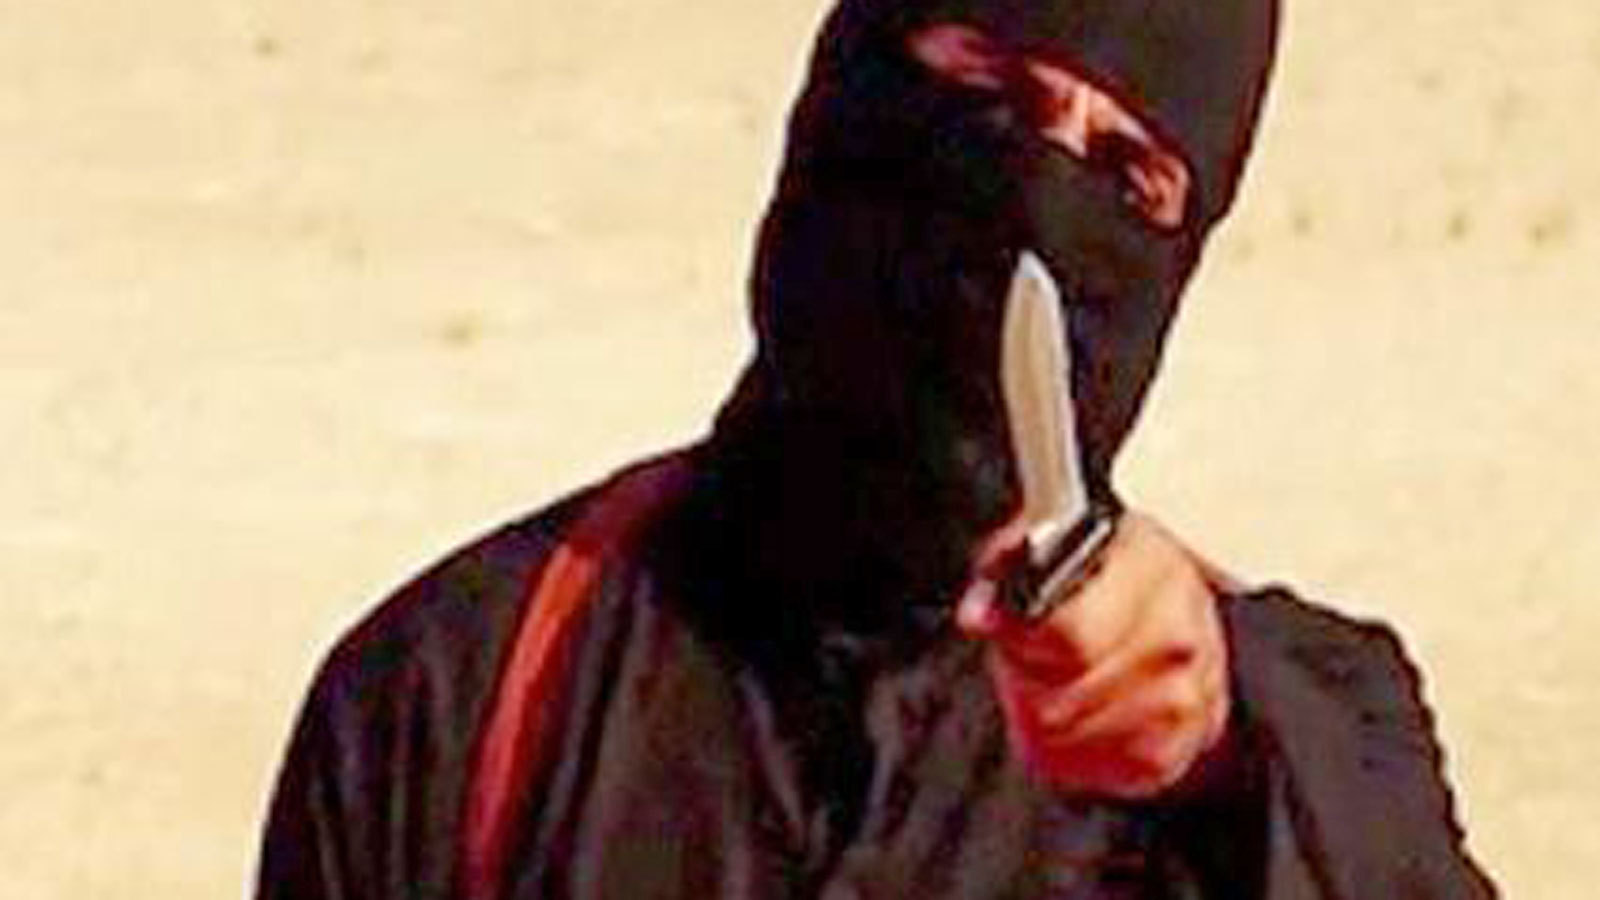 'Jihadi John' identified as London-raised college grad